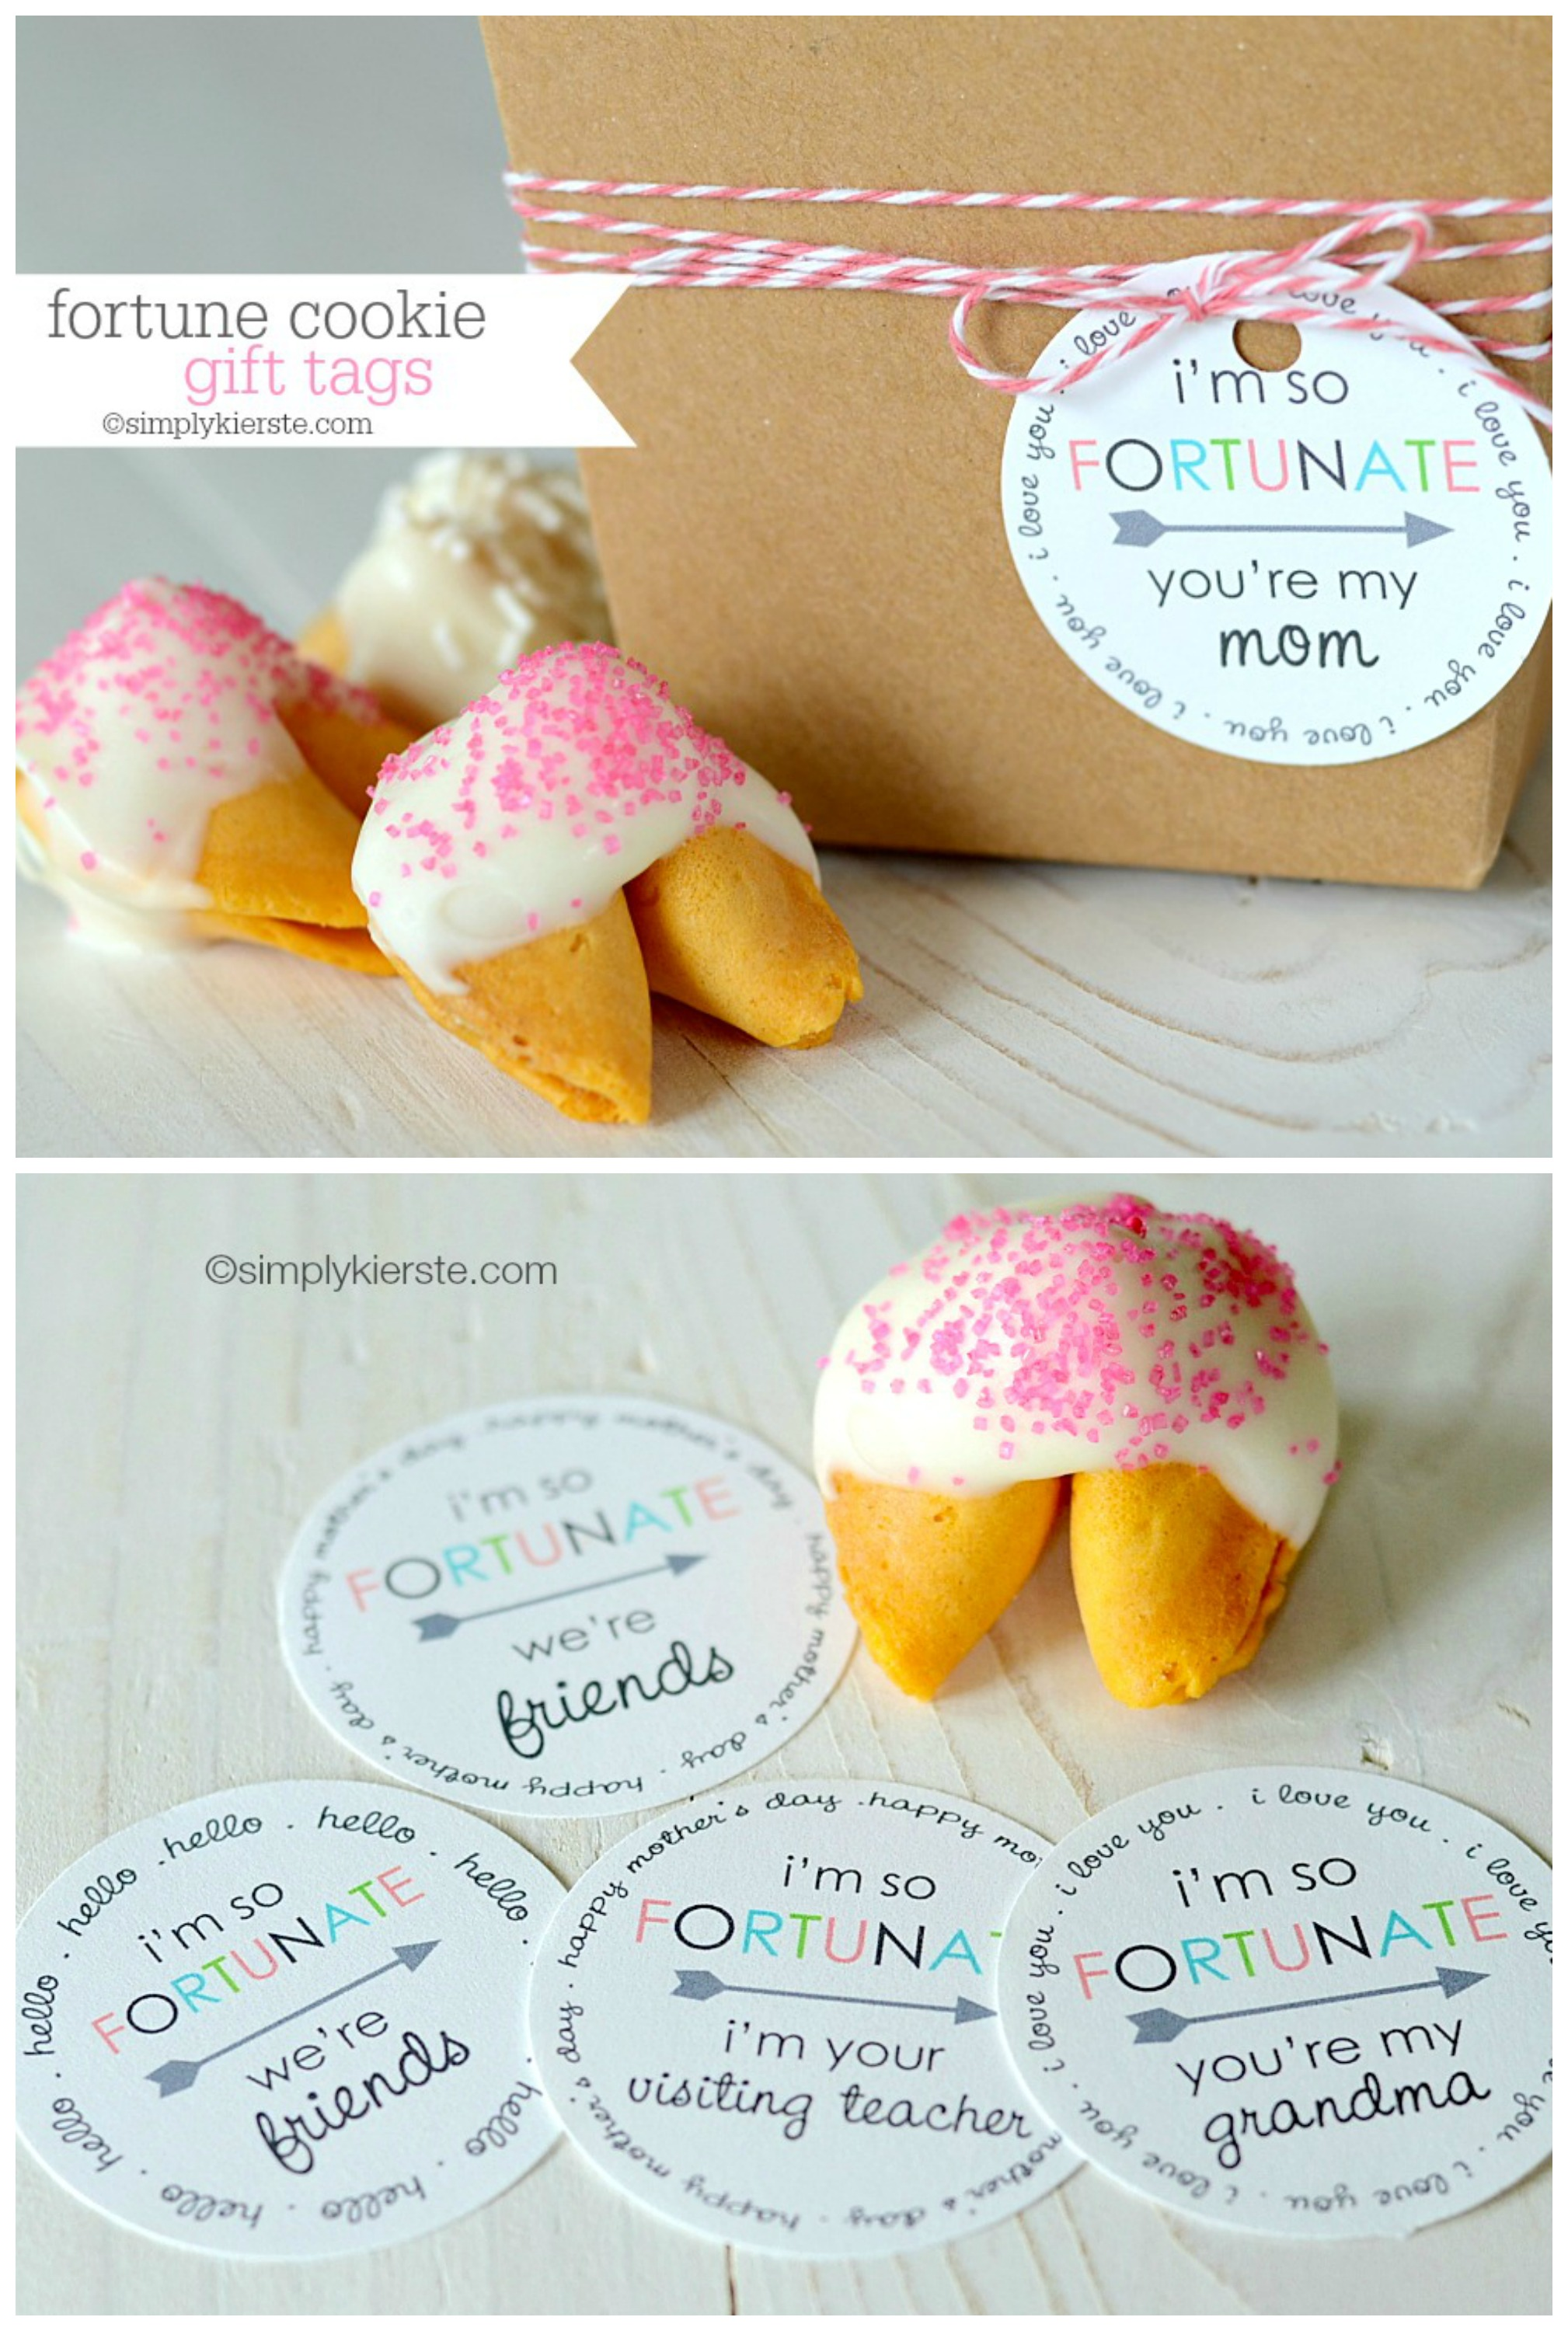 Fortune cookie gift tags simplykierste fortune cookie gift tags simplykierste negle Gallery